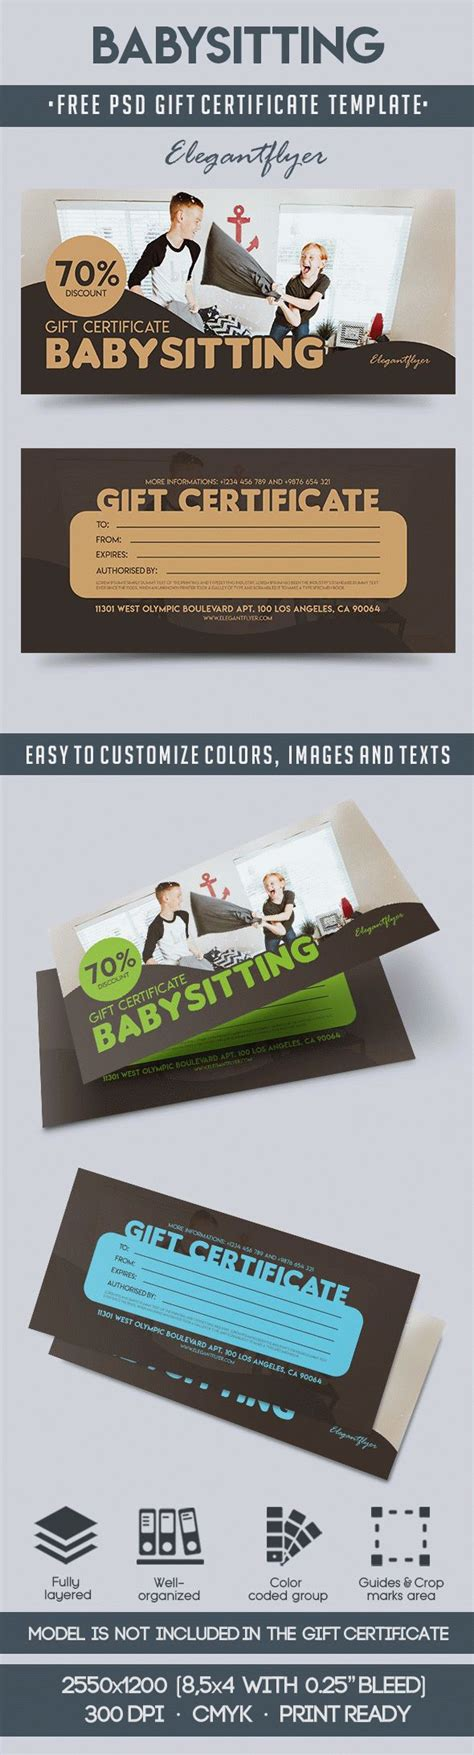 free gift card psd template babysitting free gift certificate psd template by